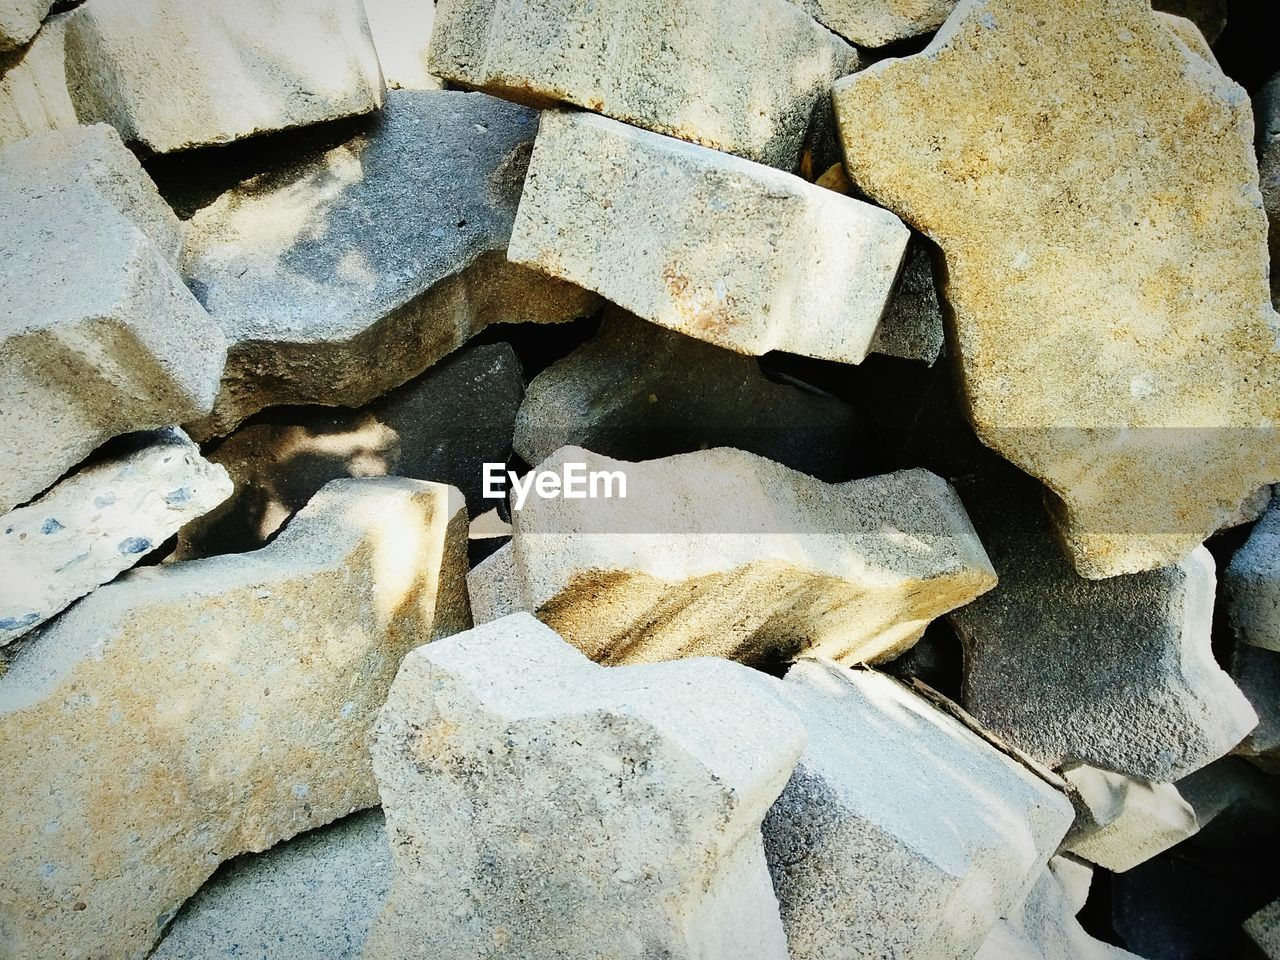 backgrounds, full frame, no people, close-up, large group of objects, nature, abundance, solid, textured, day, pattern, rock, outdoors, rock - object, stack, detail, winter, heap, cold temperature, stone - object